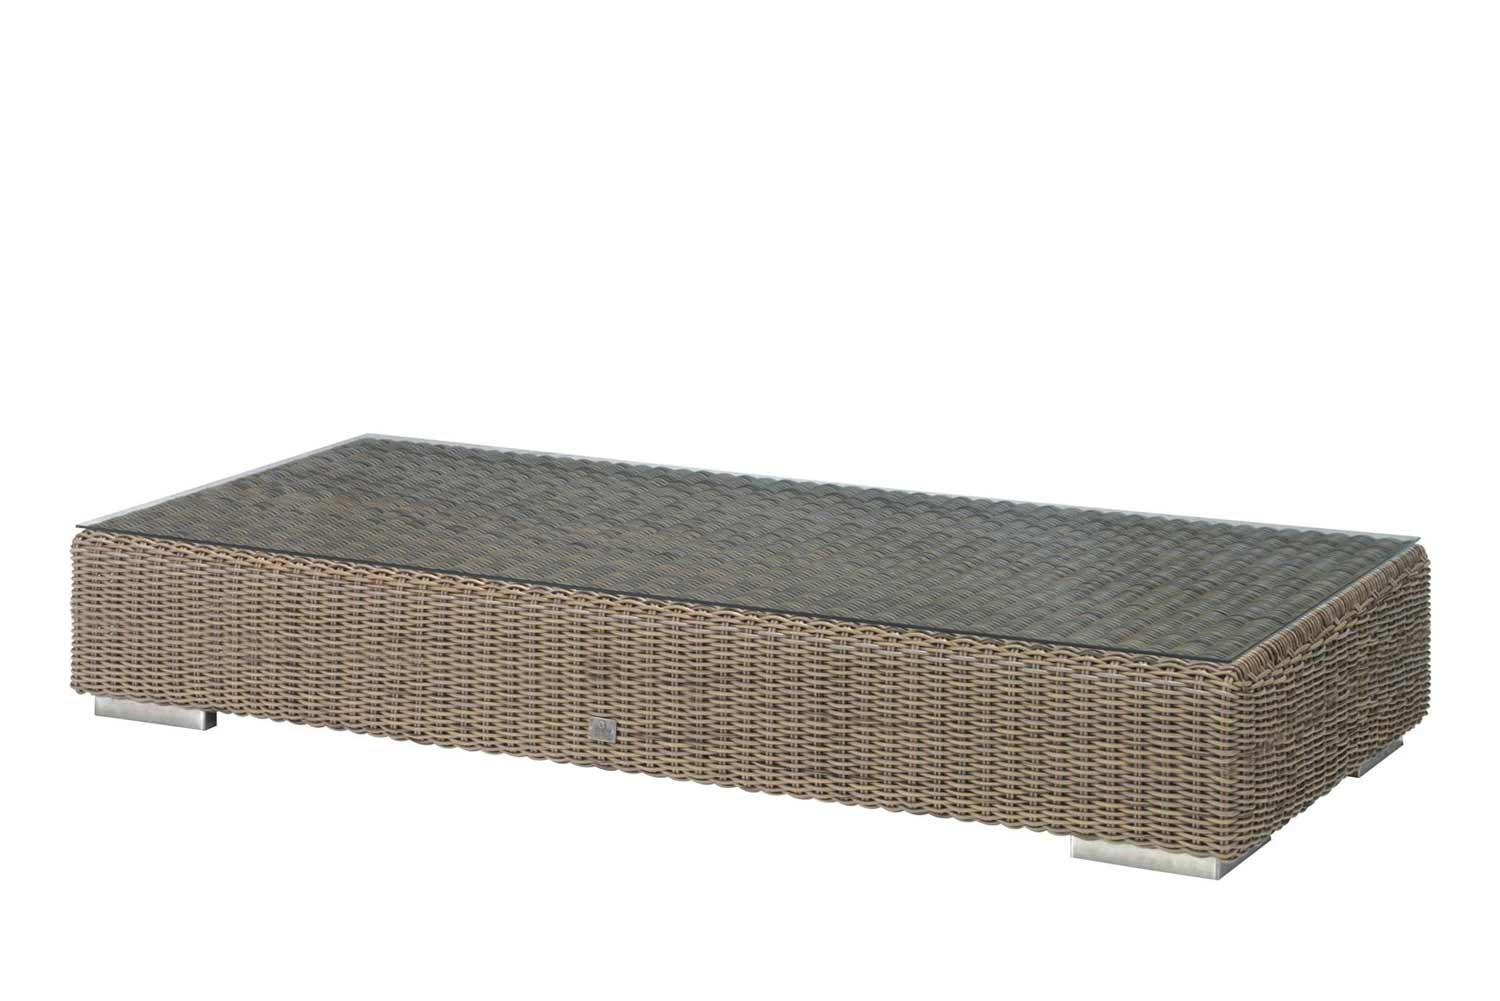 4 Seasons Outdoor Kingston loungetafel met glasplaat 180 x 80 x 35 cm